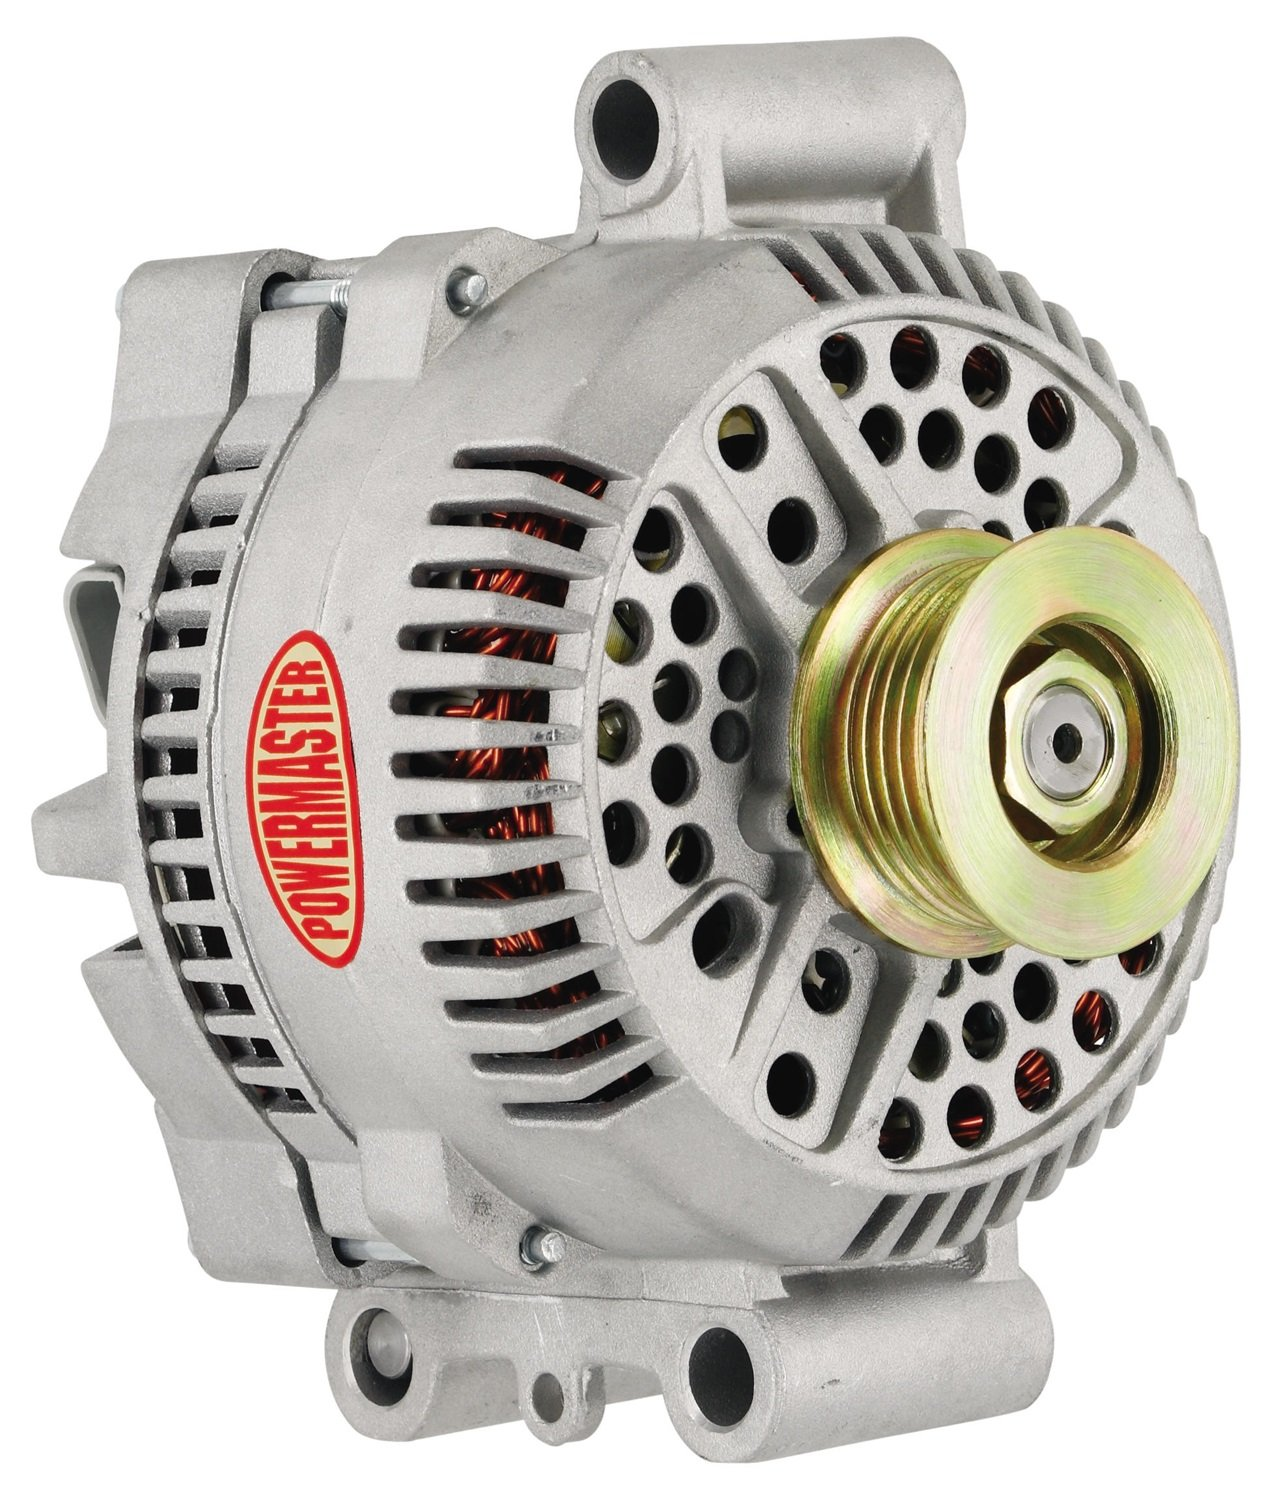 Powermaster 47768 Alternators LATE MODEL FORD 200 AMP